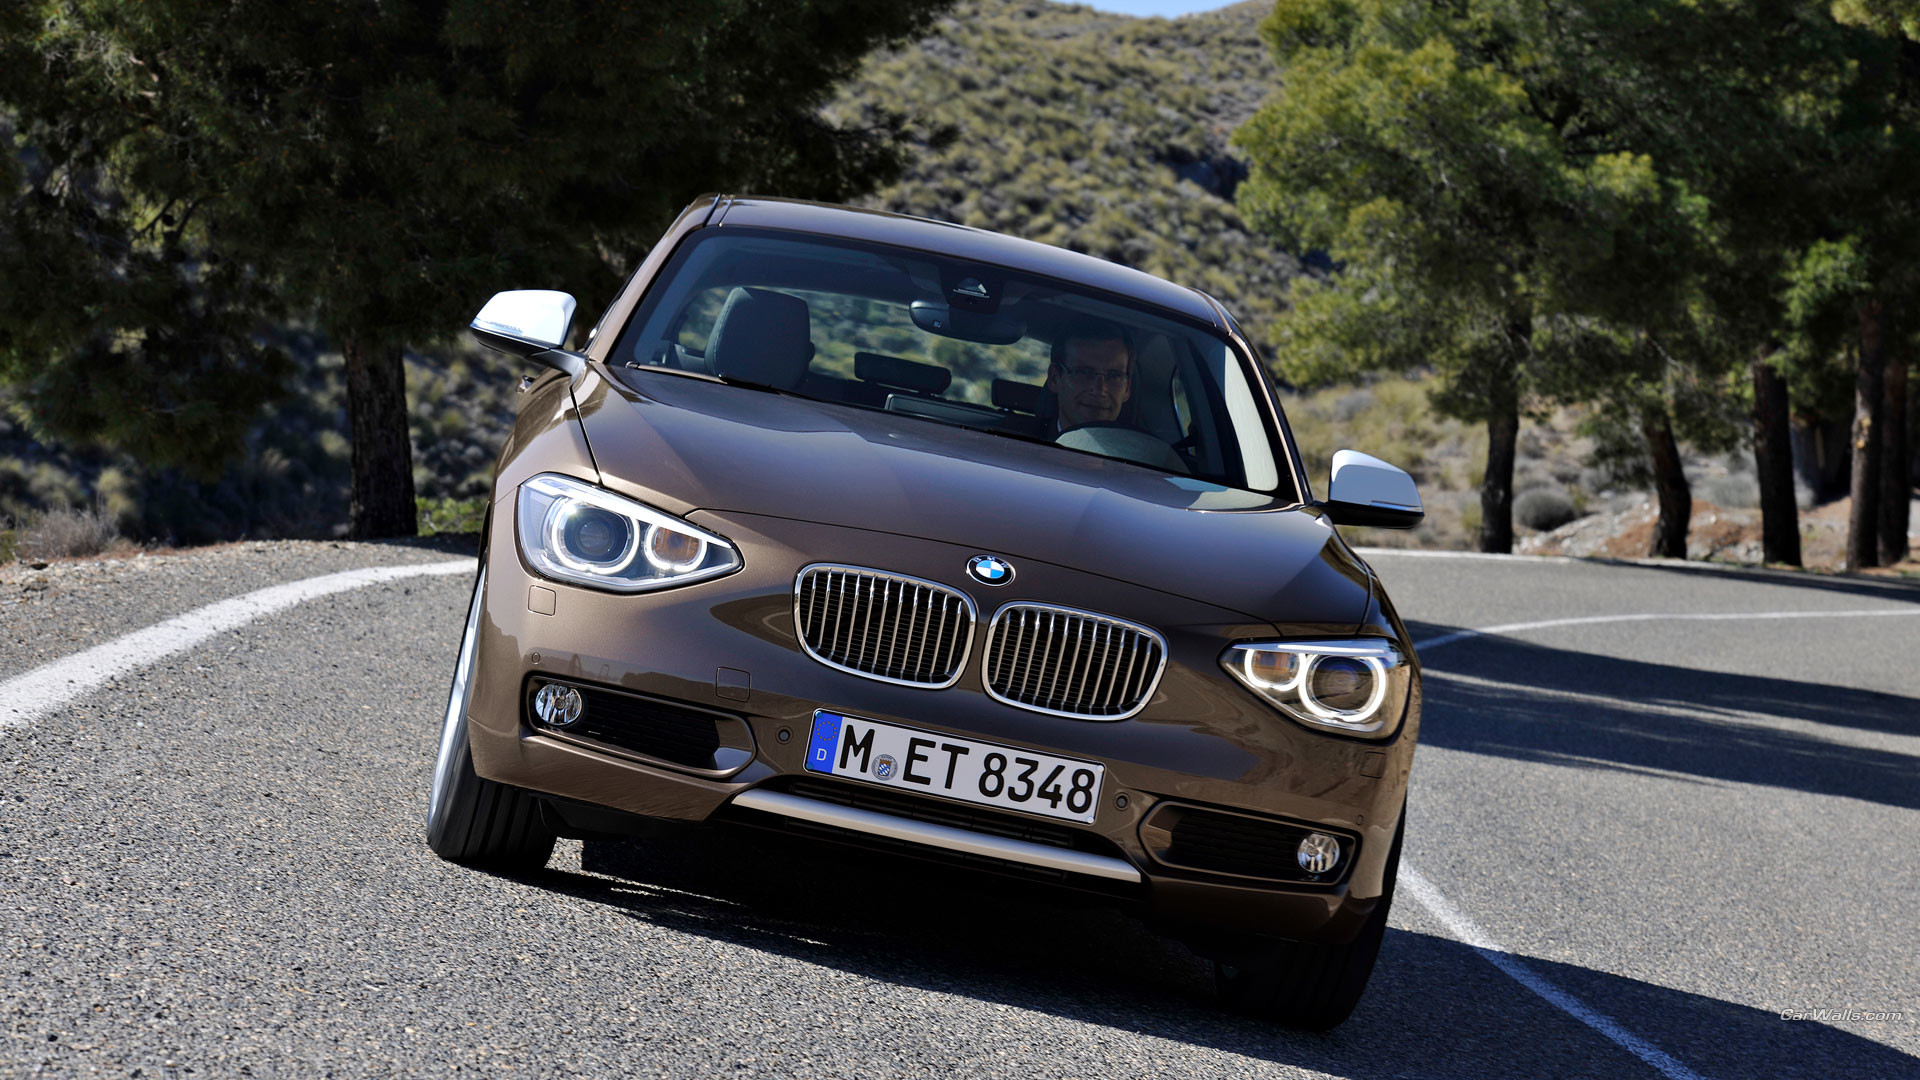 Res: 1920x1080, BMW 1 Series 1080p